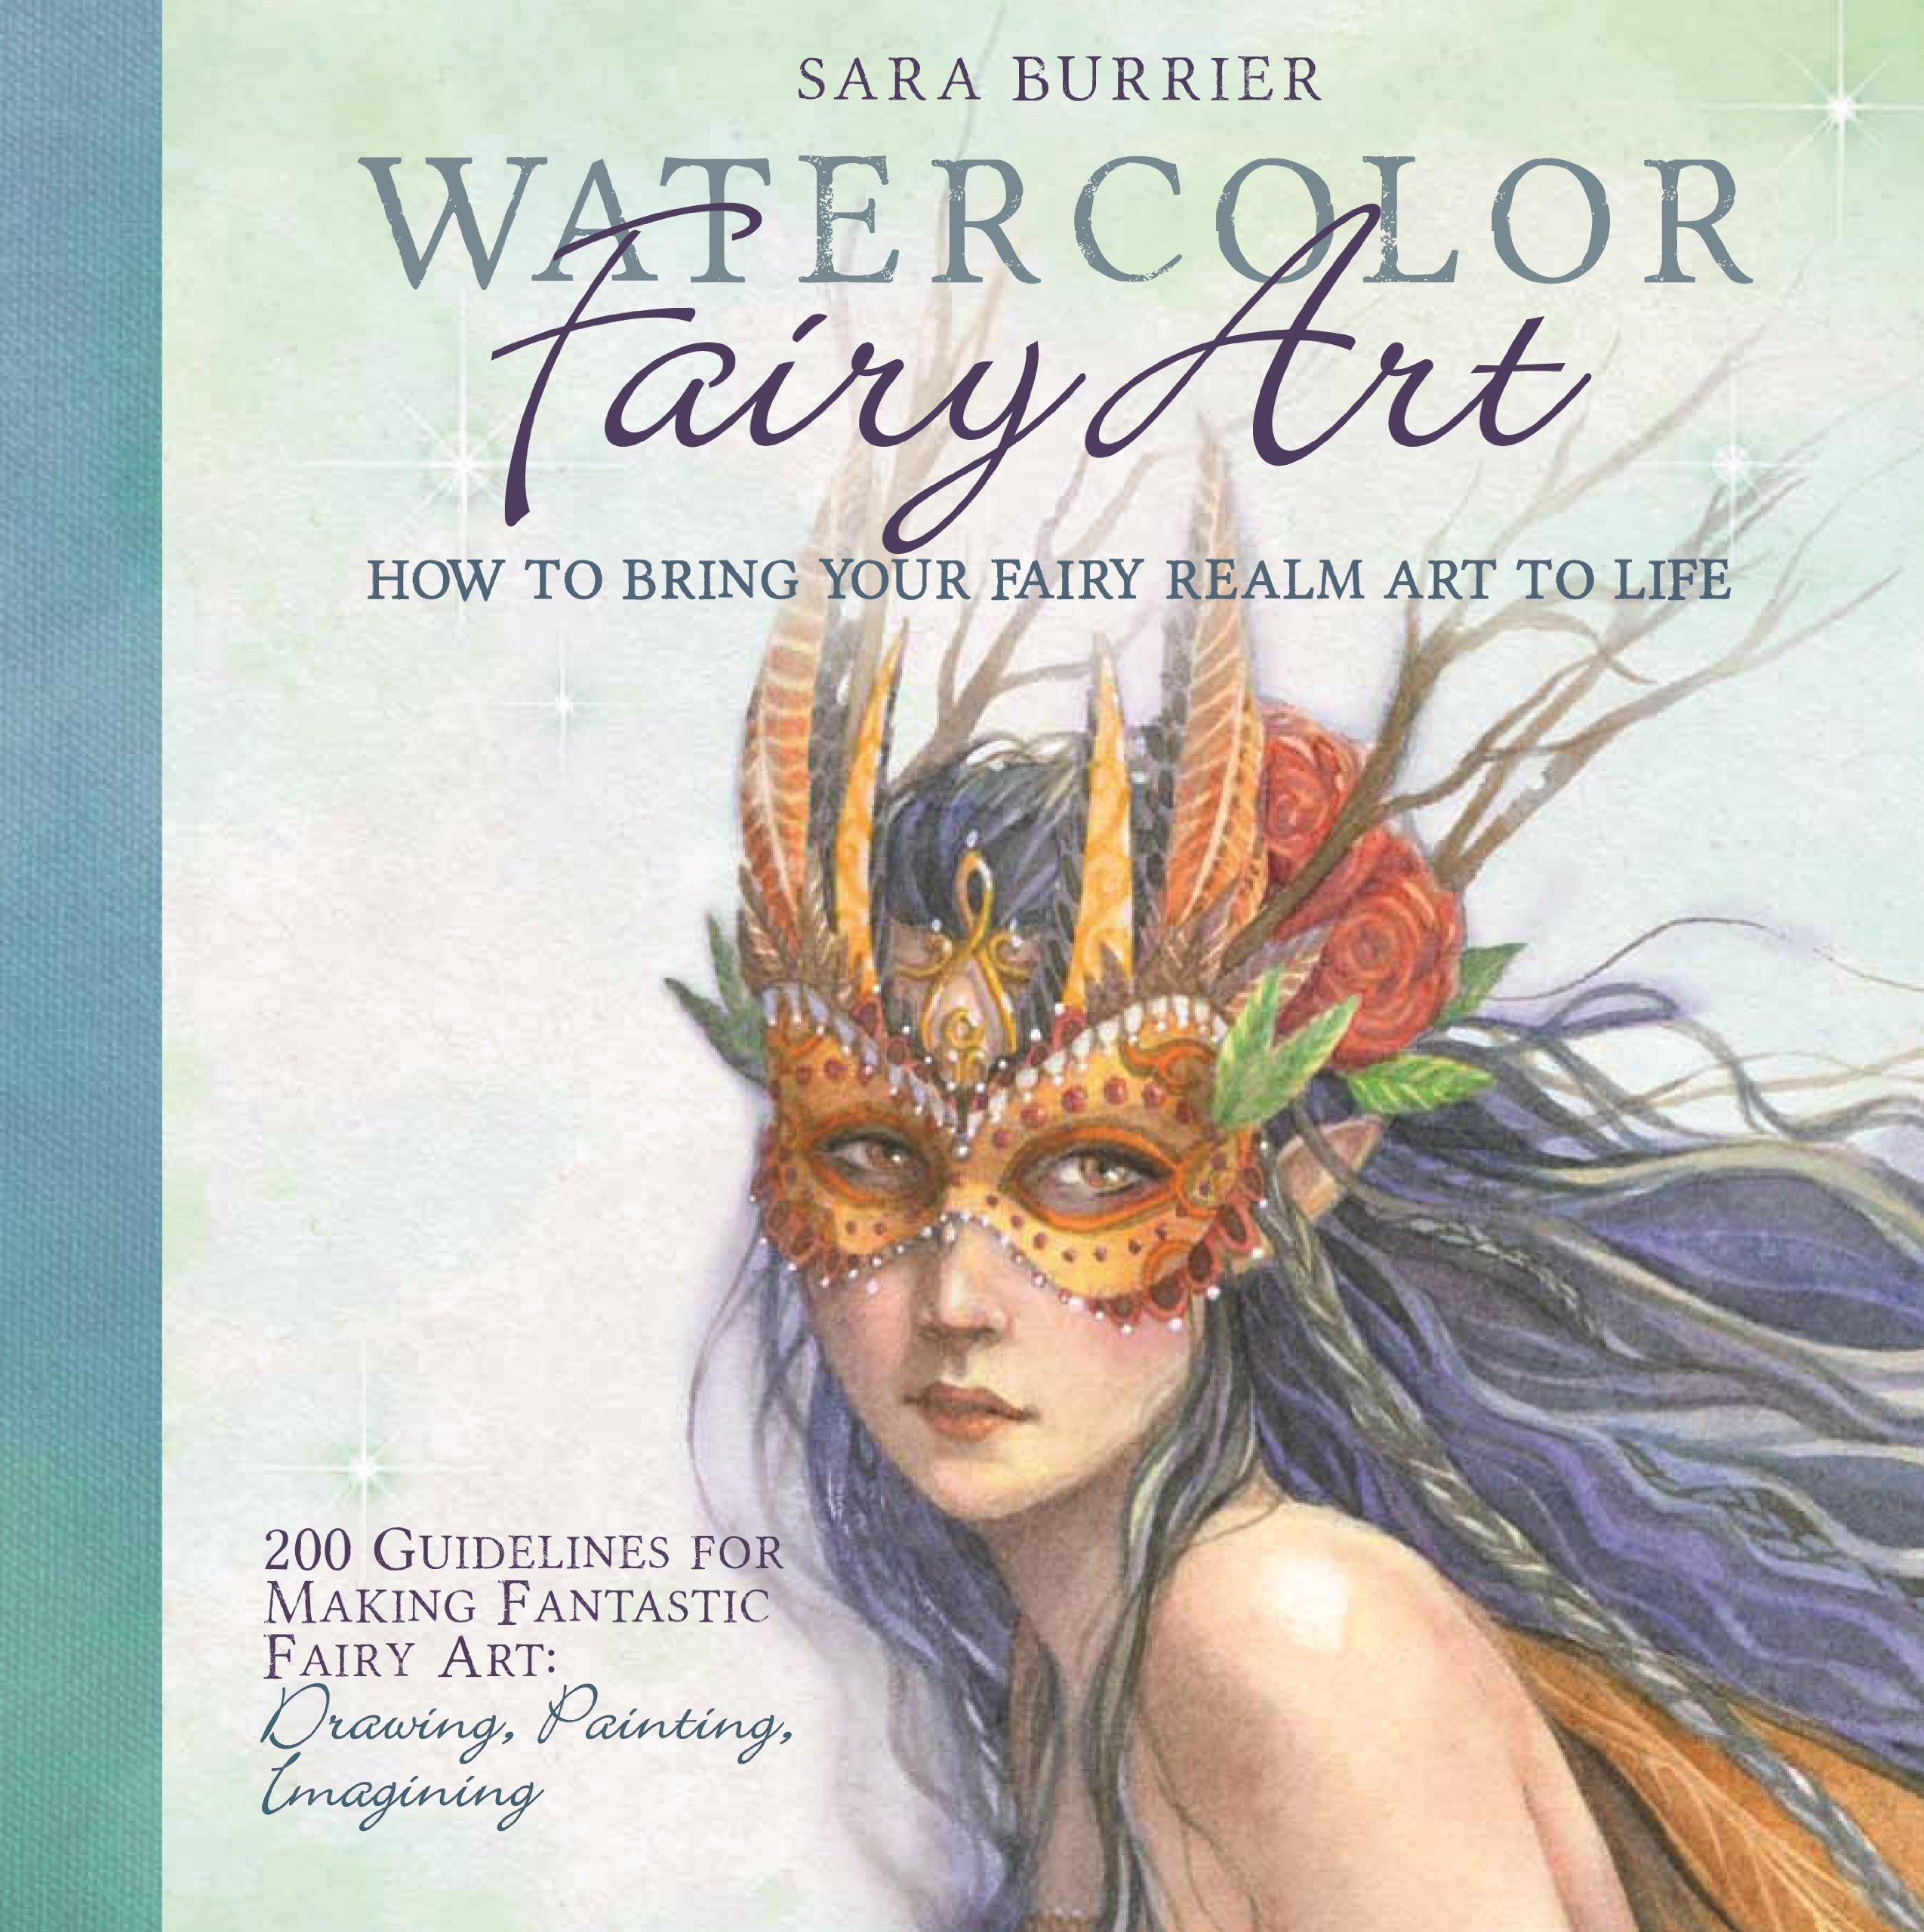 Watercolor books amazon - Watercolor Fairy Art How To Bring Your Fairy Realm Art To Life Sara Burrier 9781438004365 Amazon Com Books